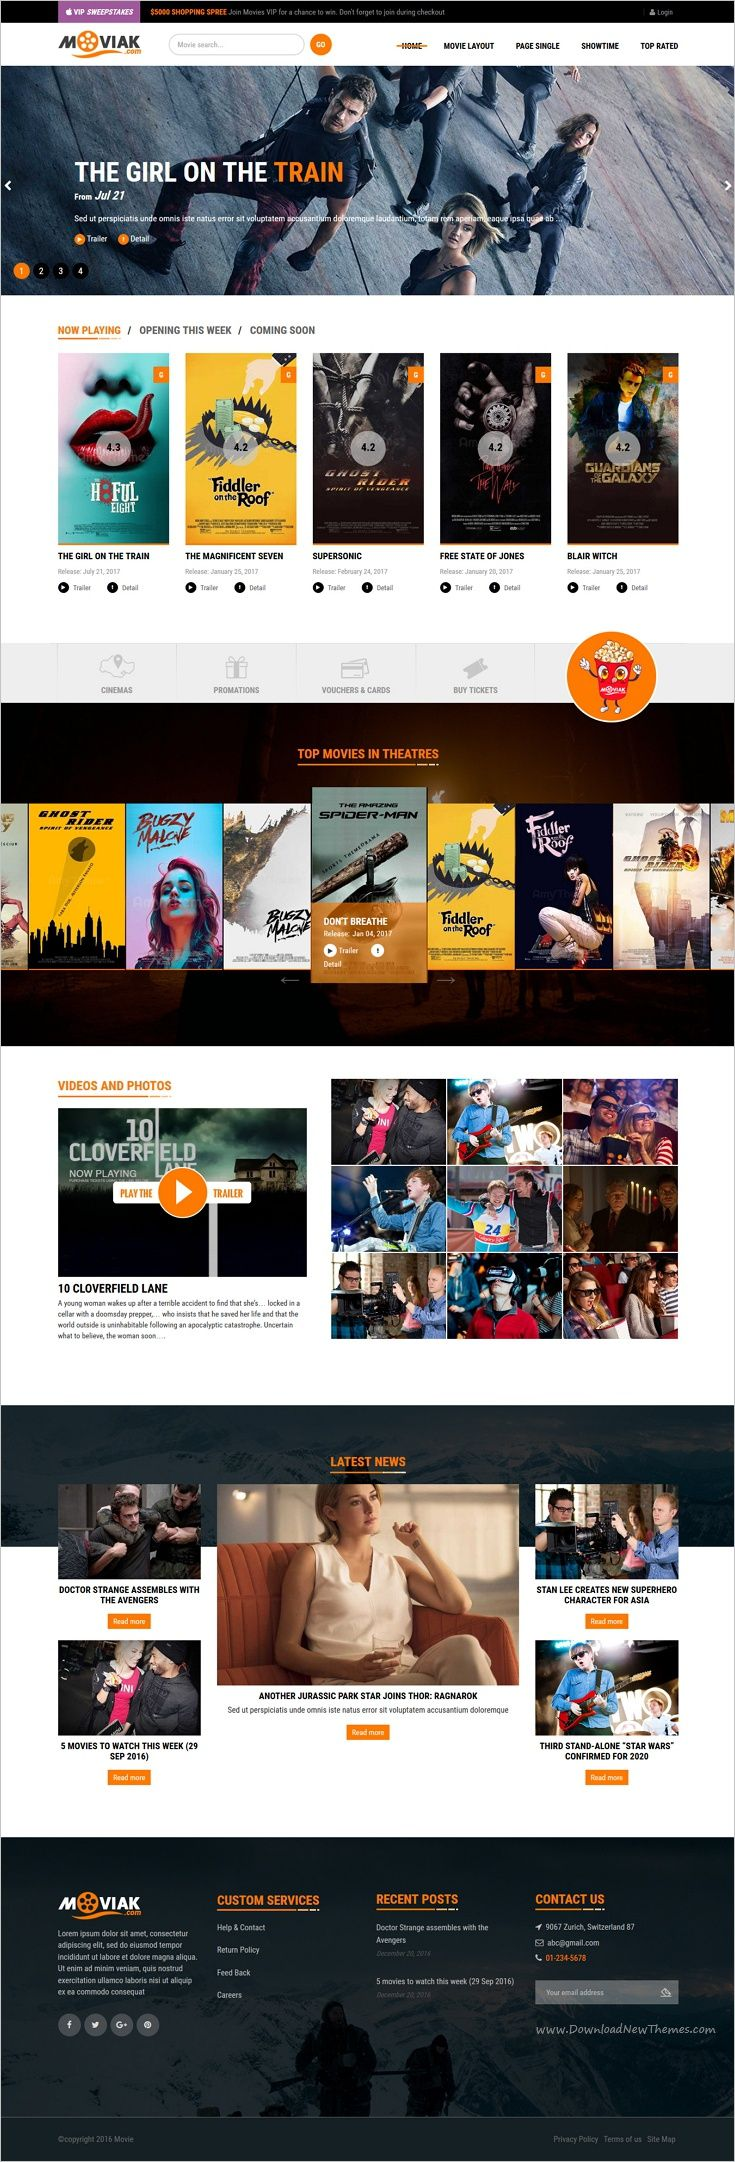 AmyMovie is modern and professional interface responsive 2in1 #WordPress theme for stunning #movie and #cinema website with #IMDB importer integrated download now➩ https://themeforest.net/item/amymovie-movie-cinema-wordpress-theme/18936937?ref=Datasata